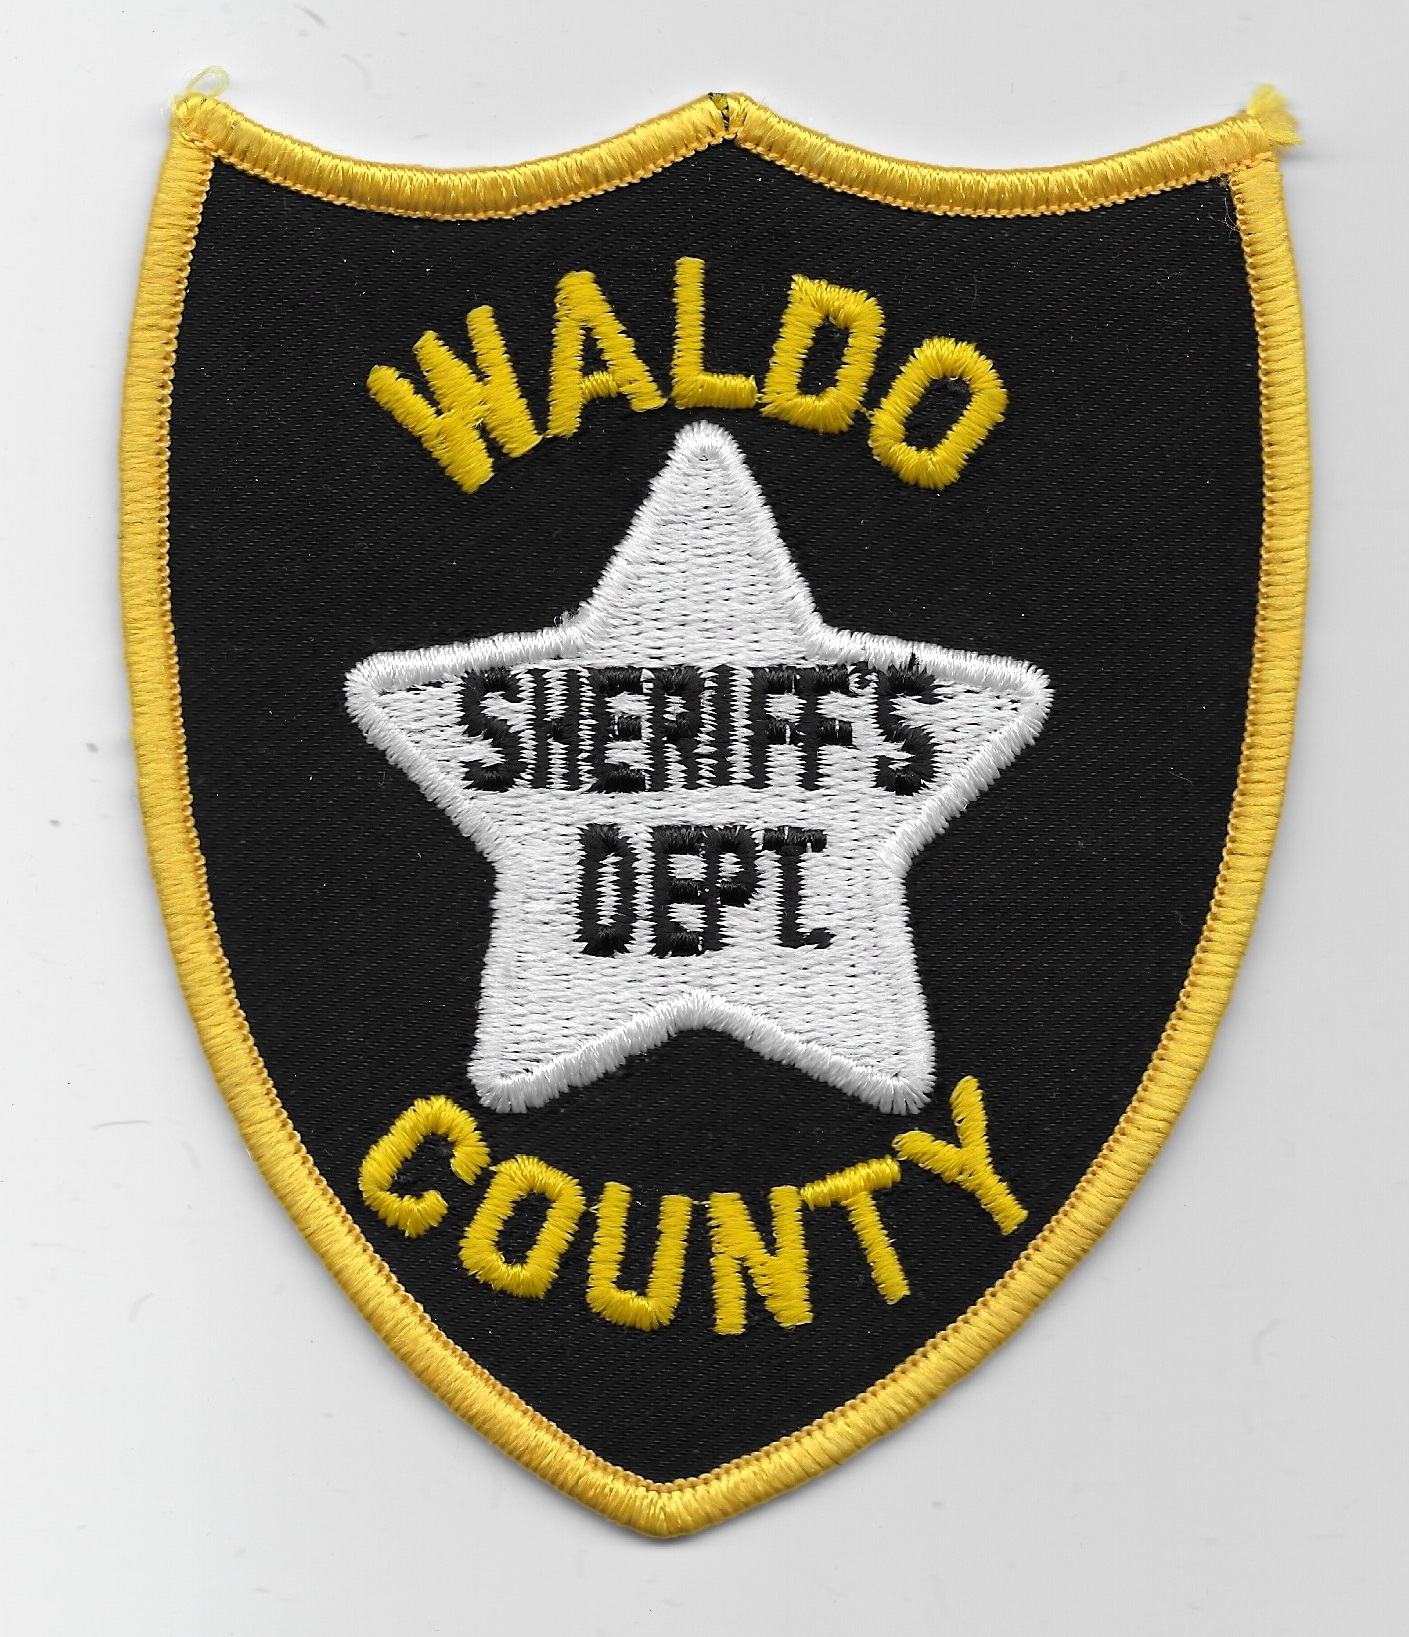 Waldo County Sheriff Maine Older